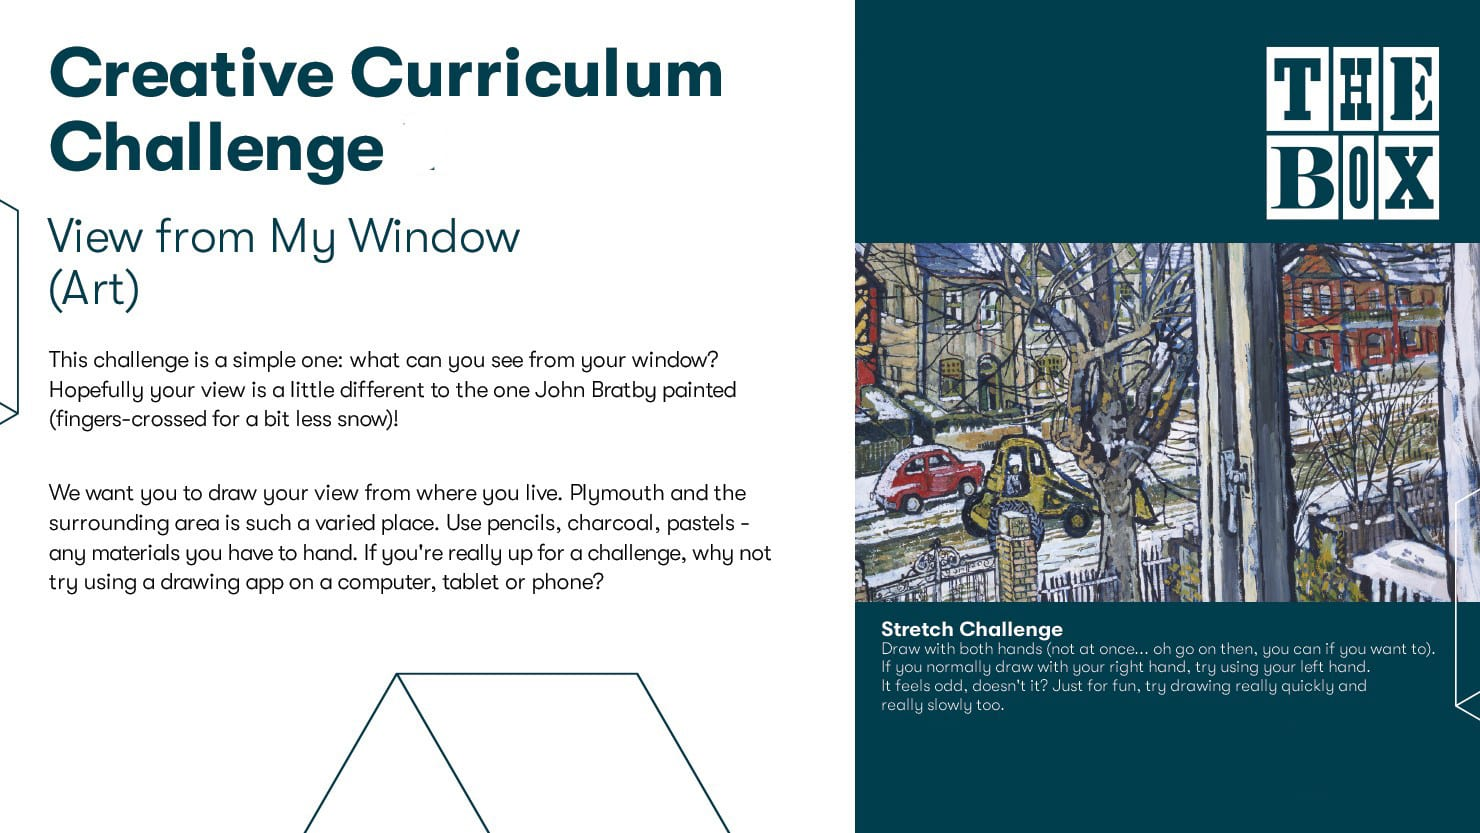 Graphic for The Box's drawing curriculum challenge